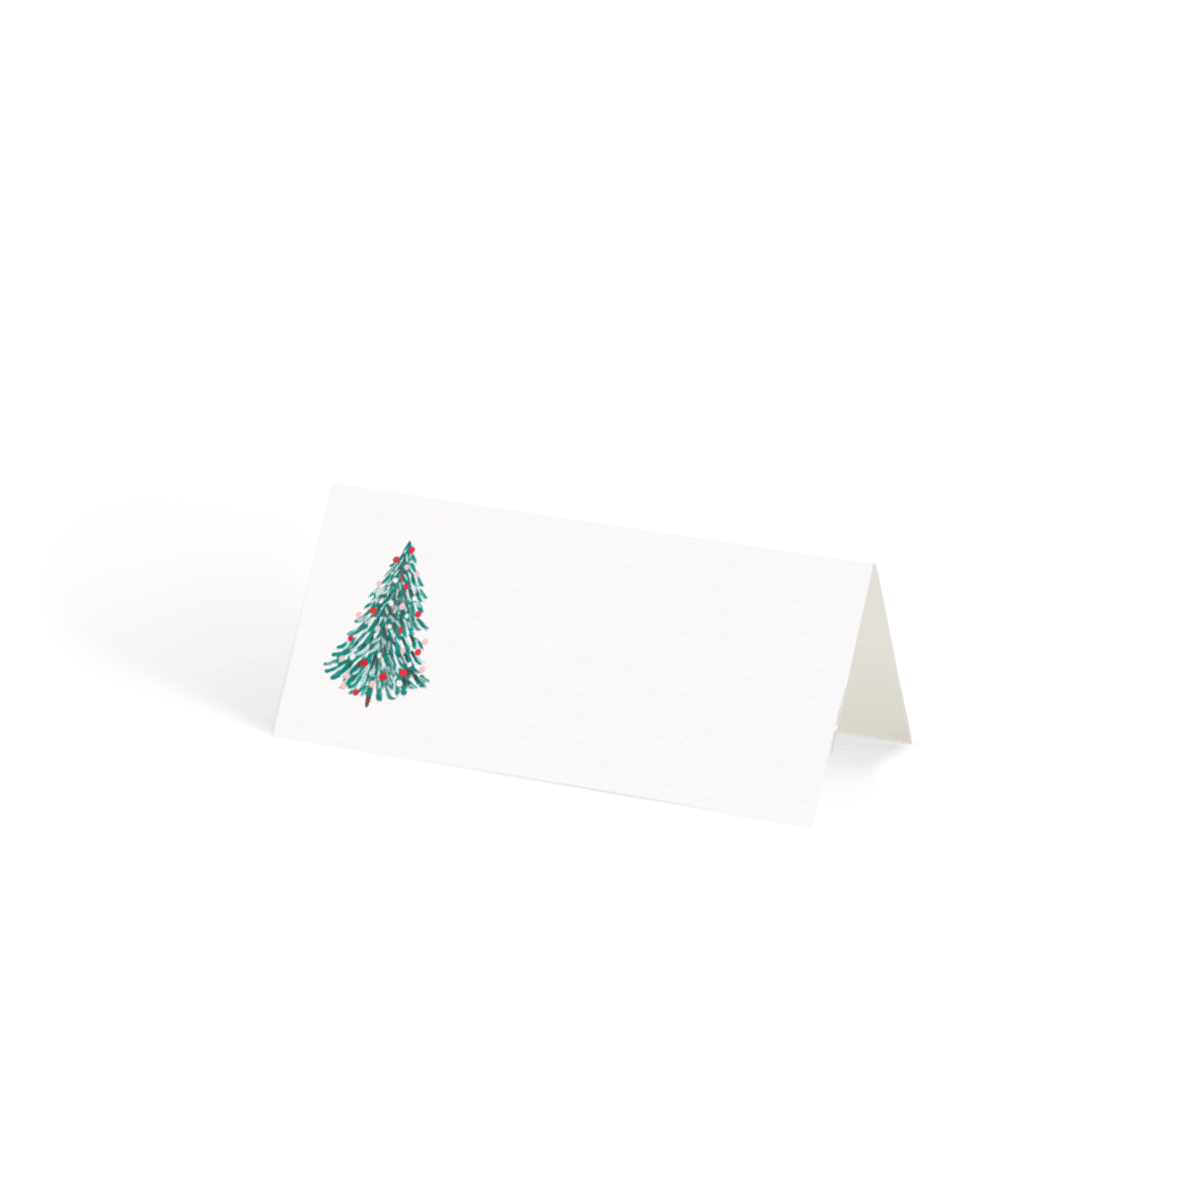 Https%3a%2f%2fwww.papier.com%2fproduct image%2f26104%2f8%2fmerry christmas tree 6533 front 1500985014.png?ixlib=rb 1.1